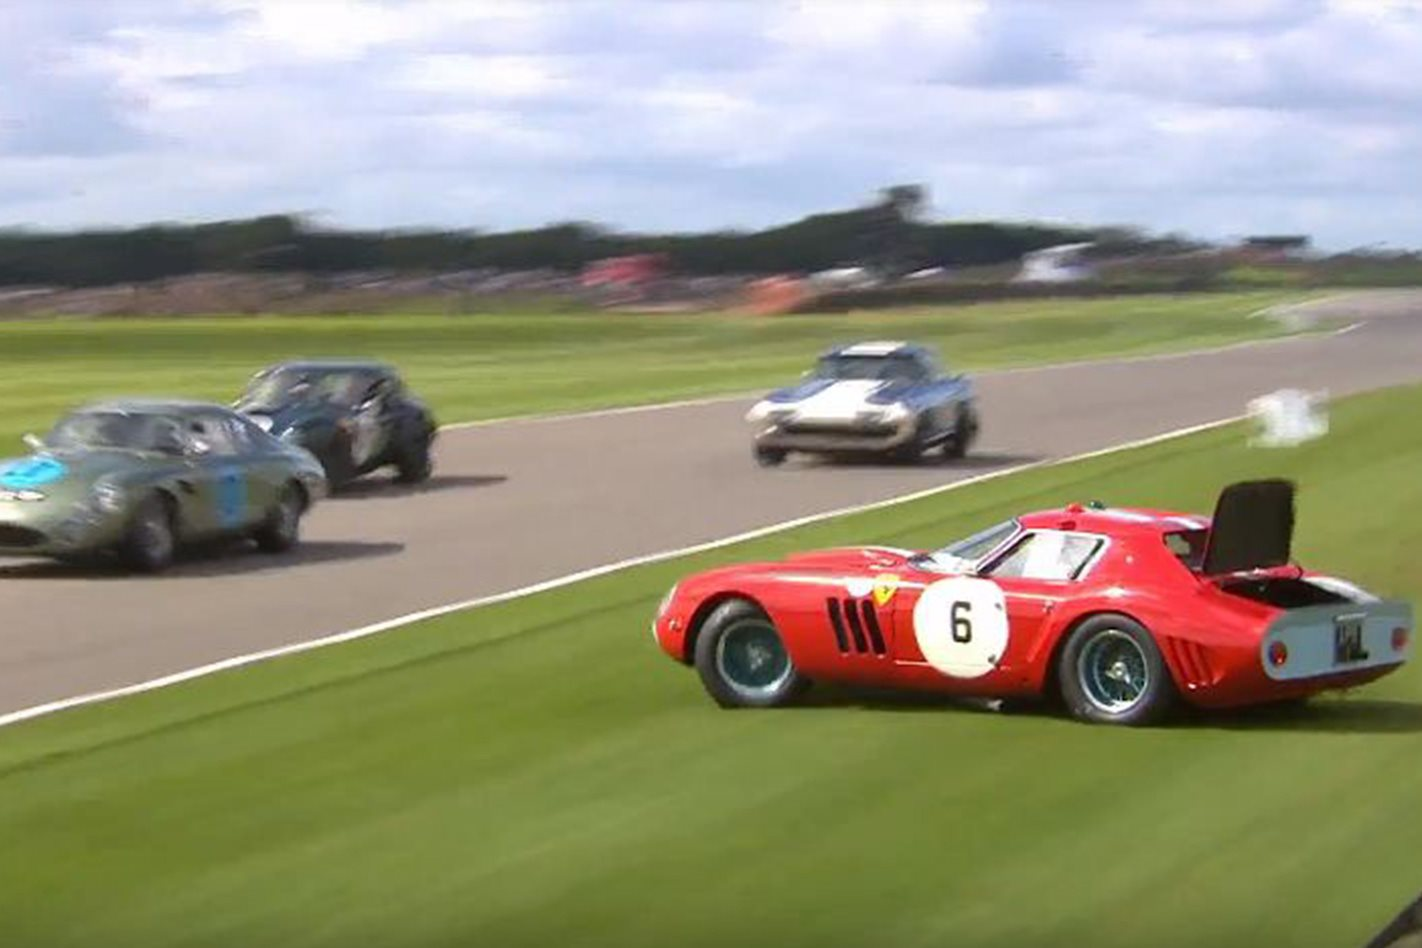 ferrari 250 gto crashes at goodwood revival. Black Bedroom Furniture Sets. Home Design Ideas